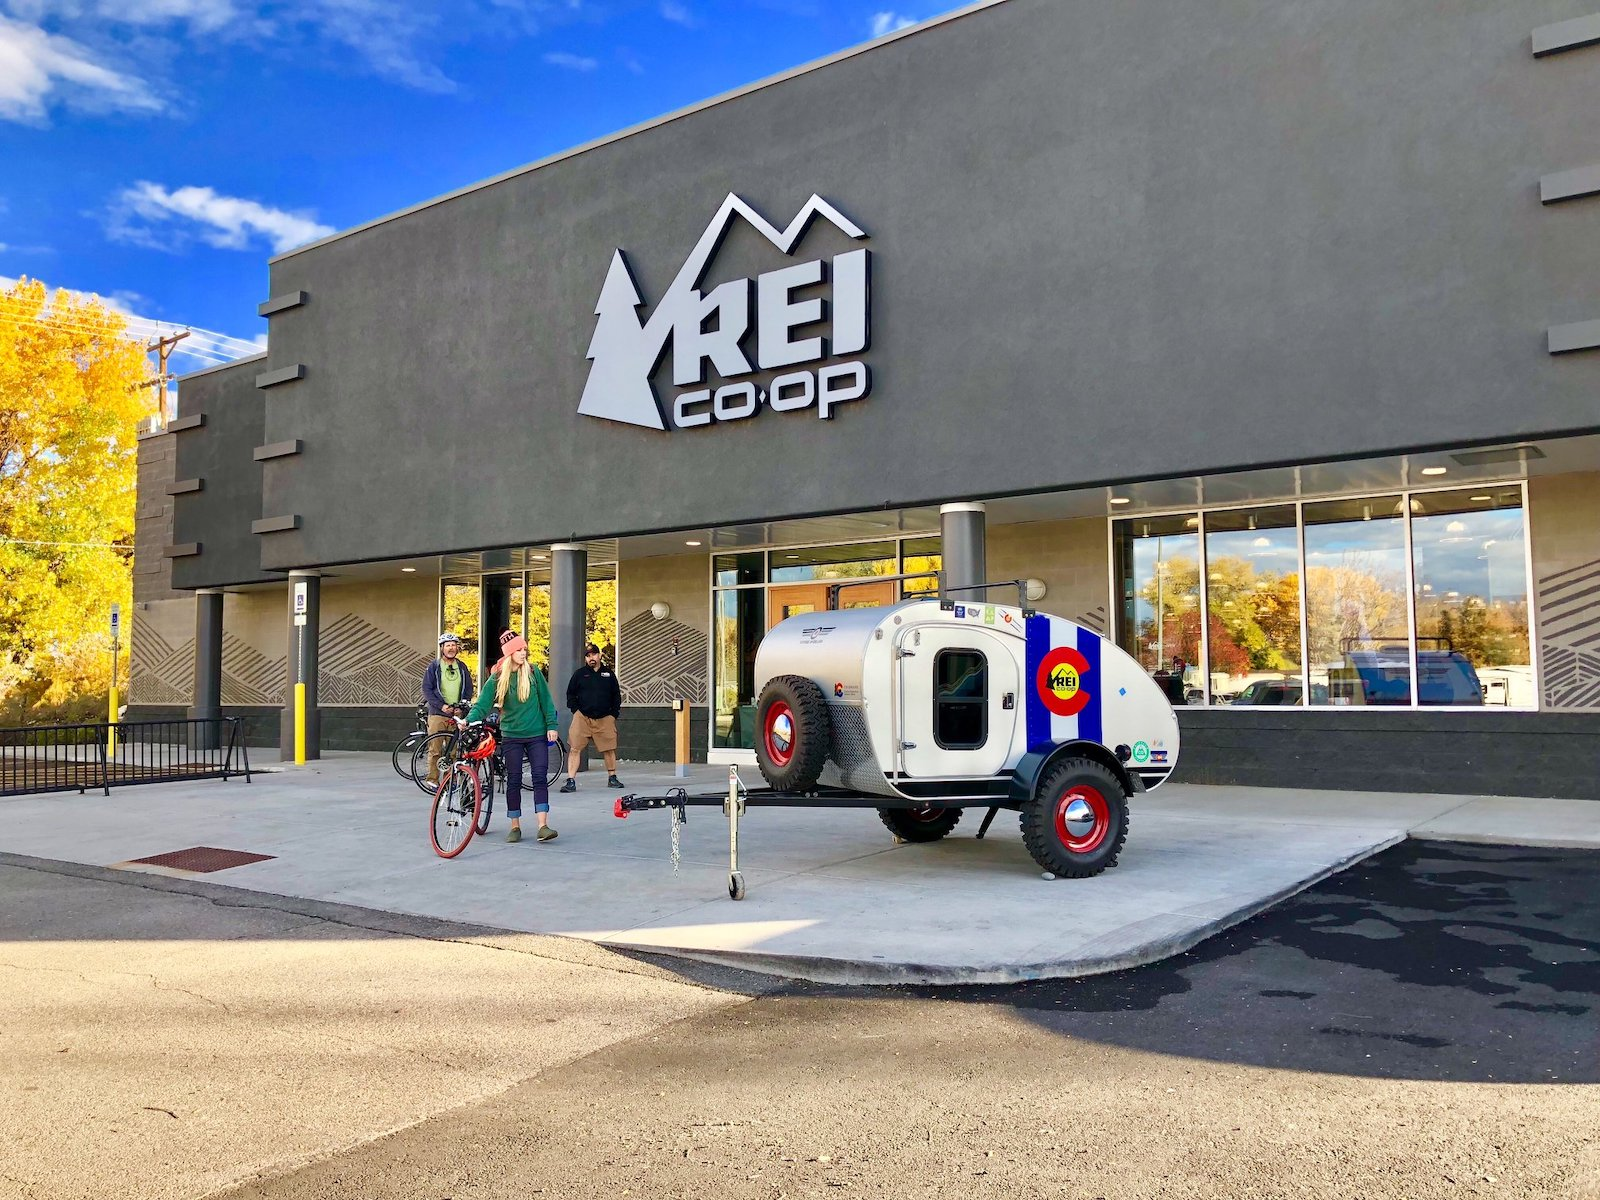 Image of a Vintage Overland at an REI Co-op